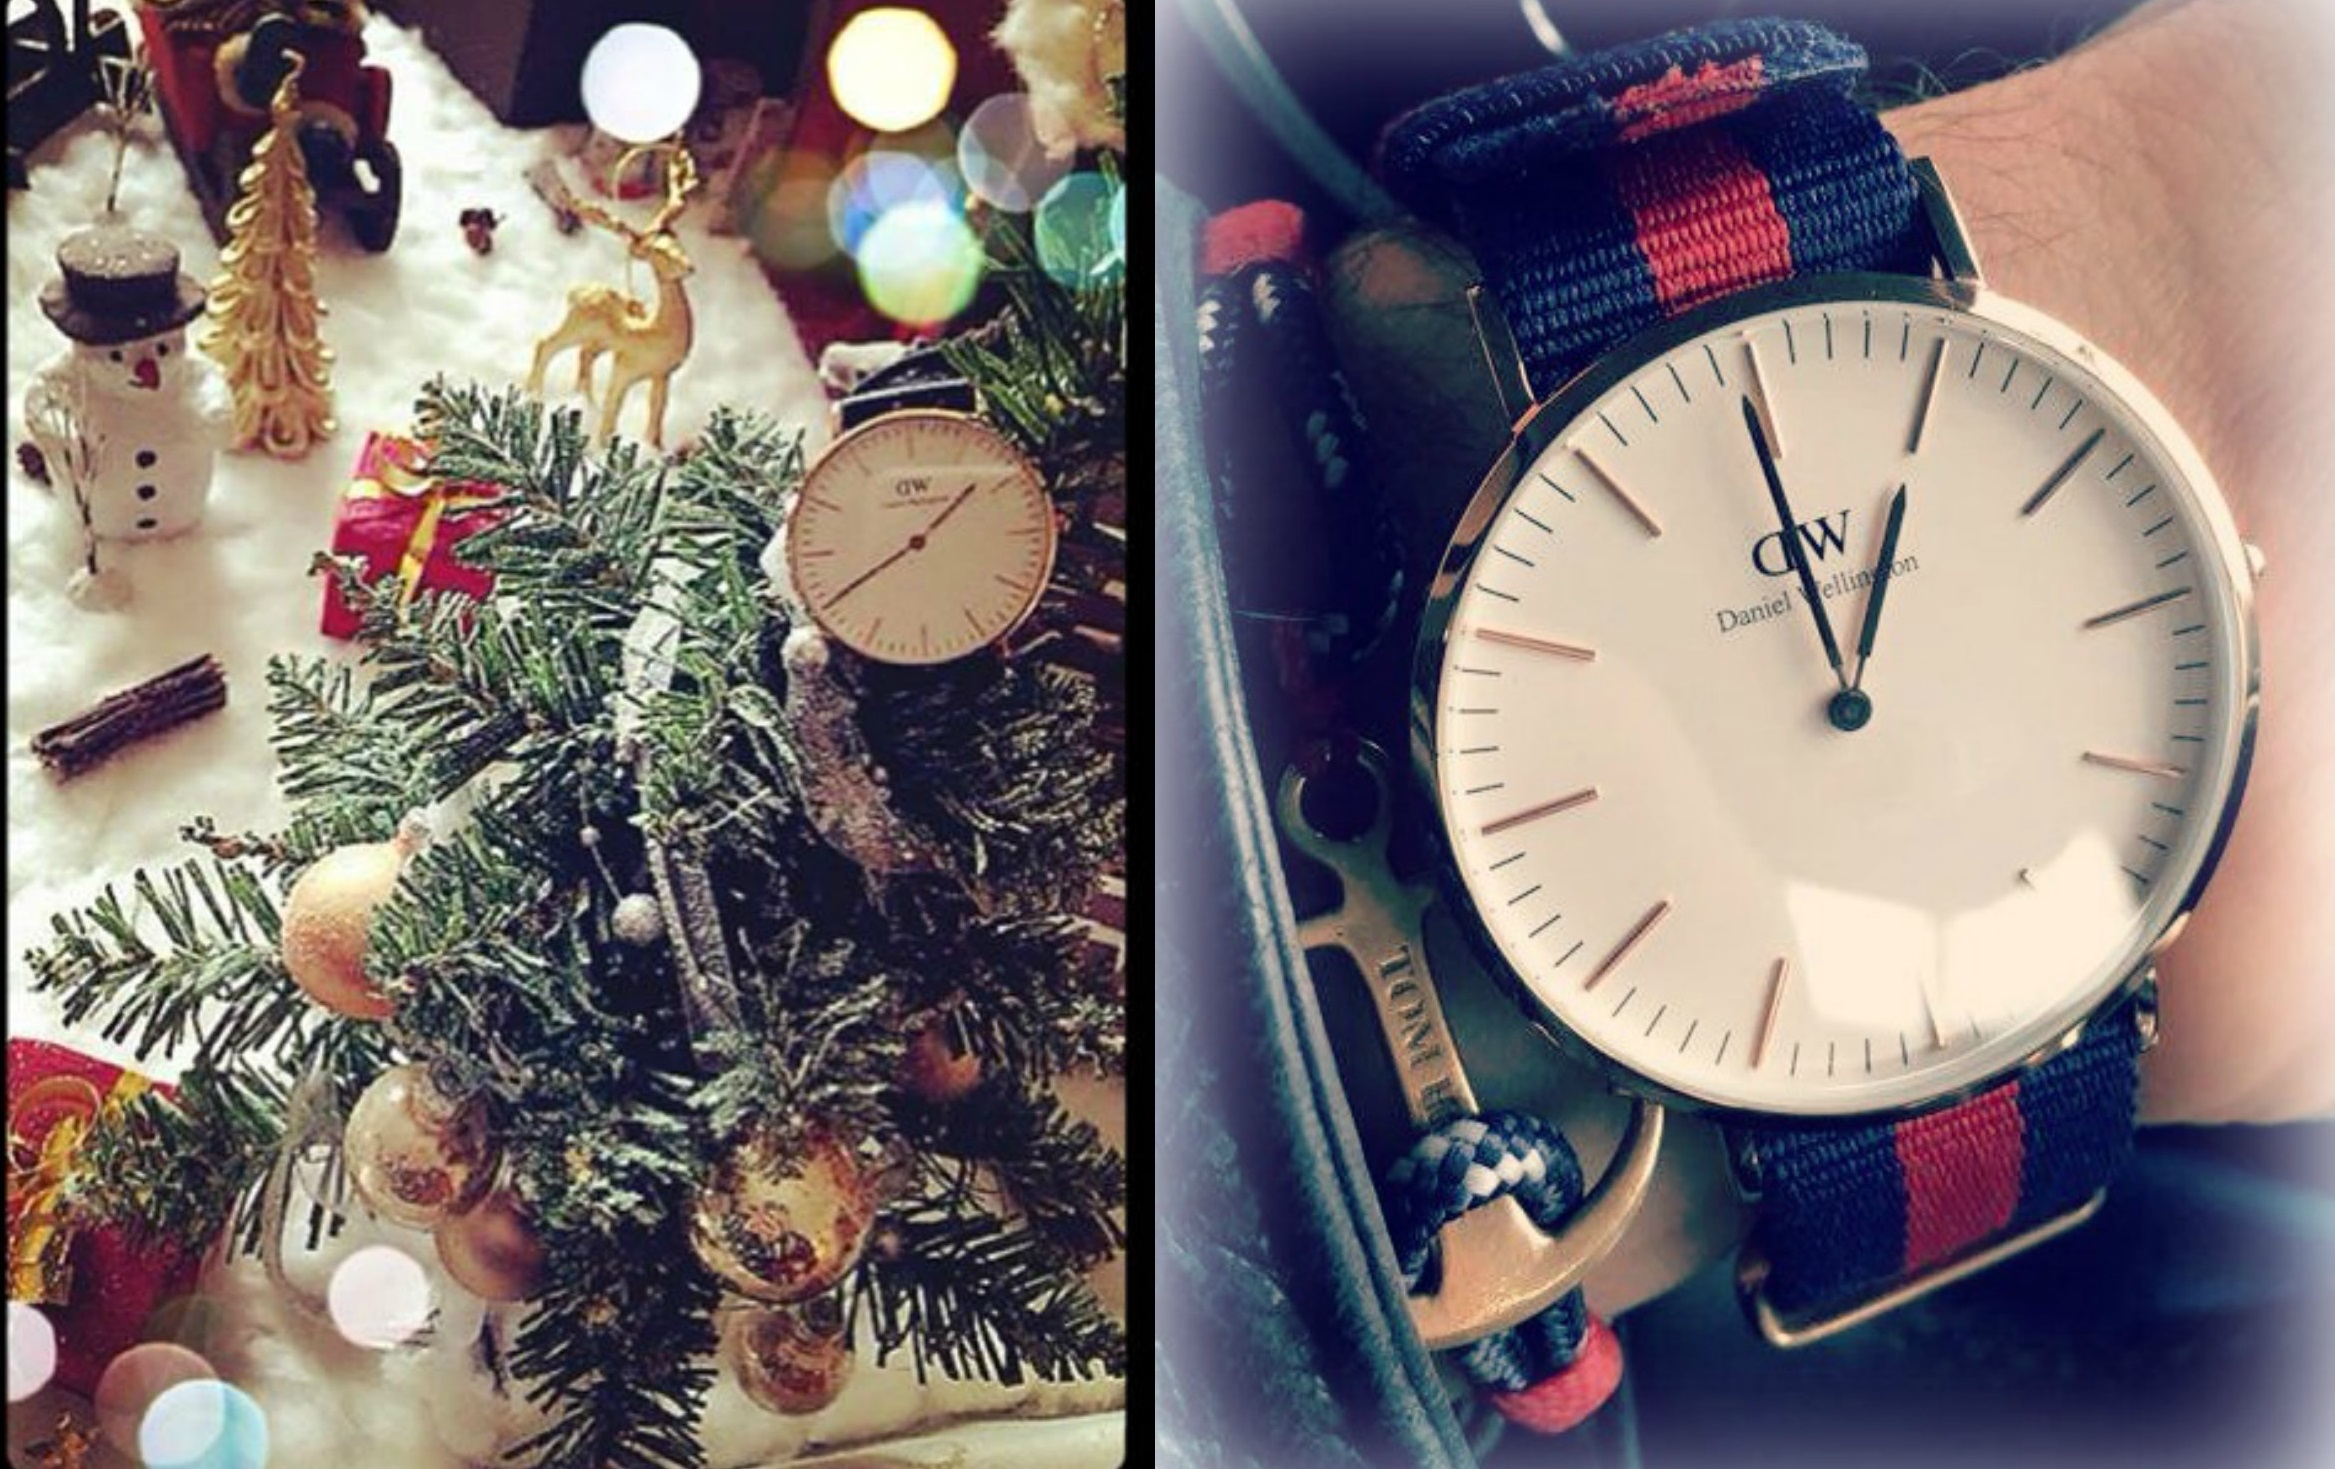 Fabuleux Daniel Wellington & Tom Hope - Eloyz's & Sam KW12